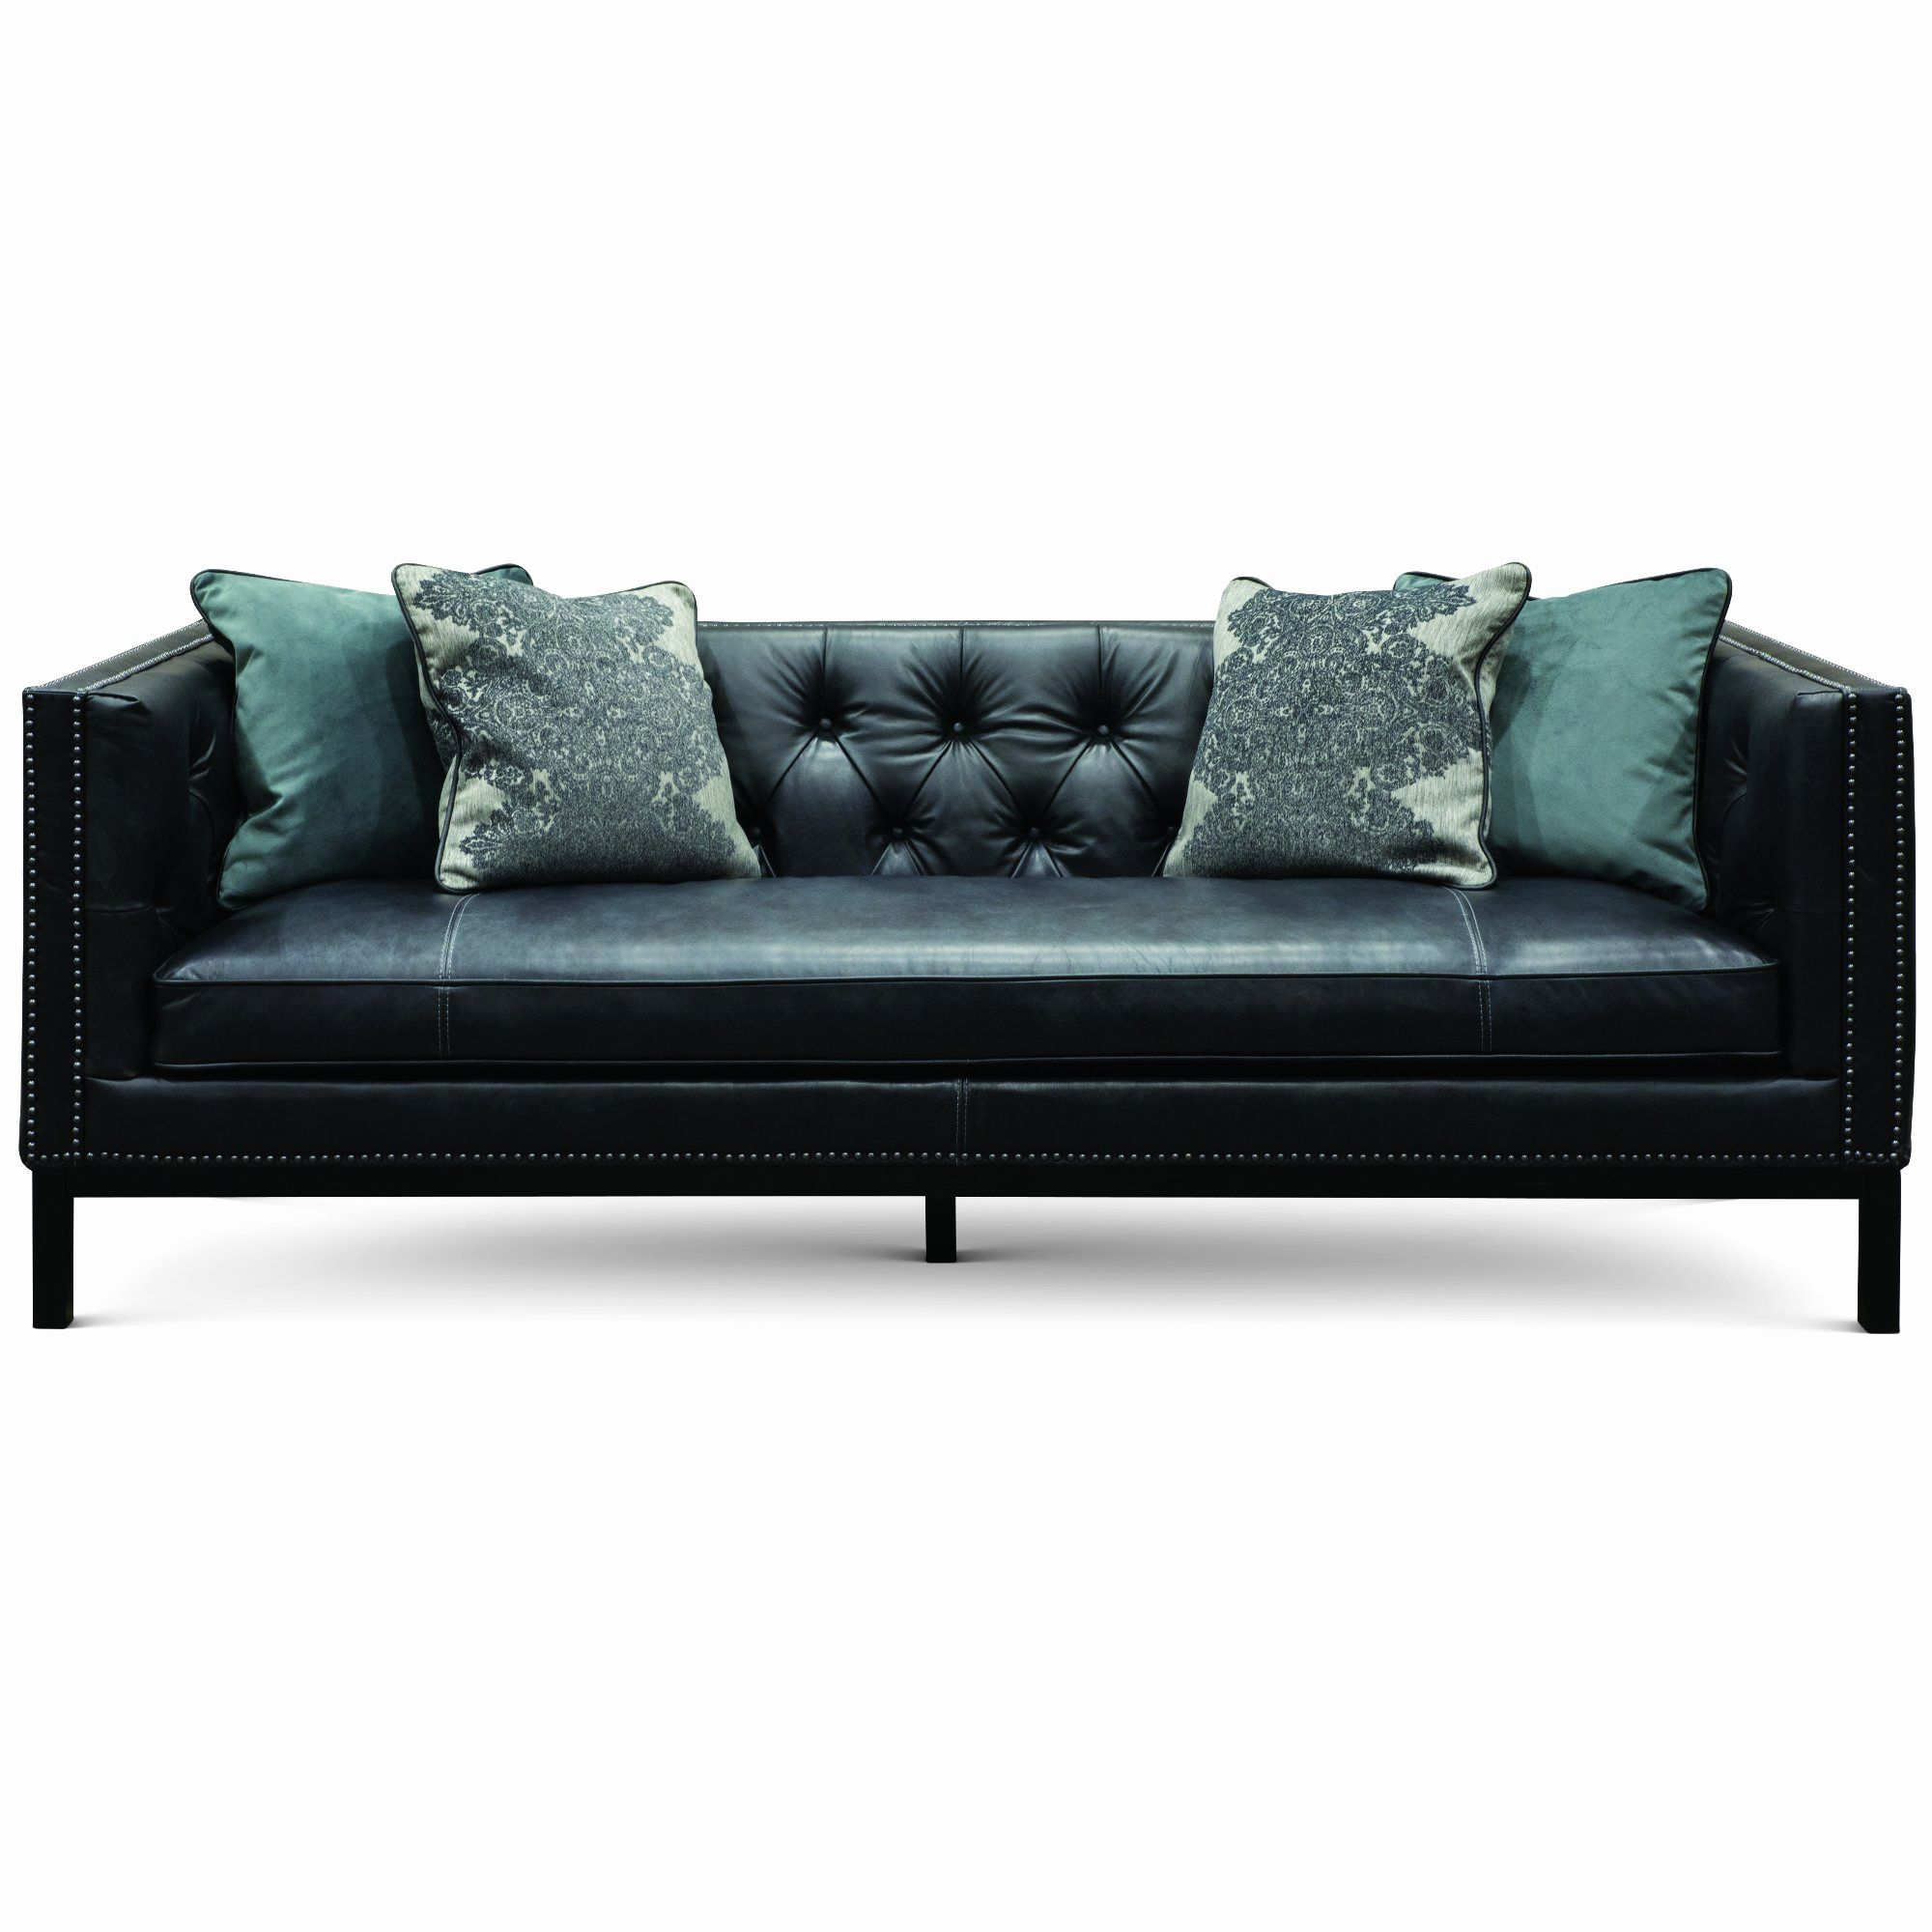 New Turquoise Leather Sofa Graphics Mid Century Modern Slate Black